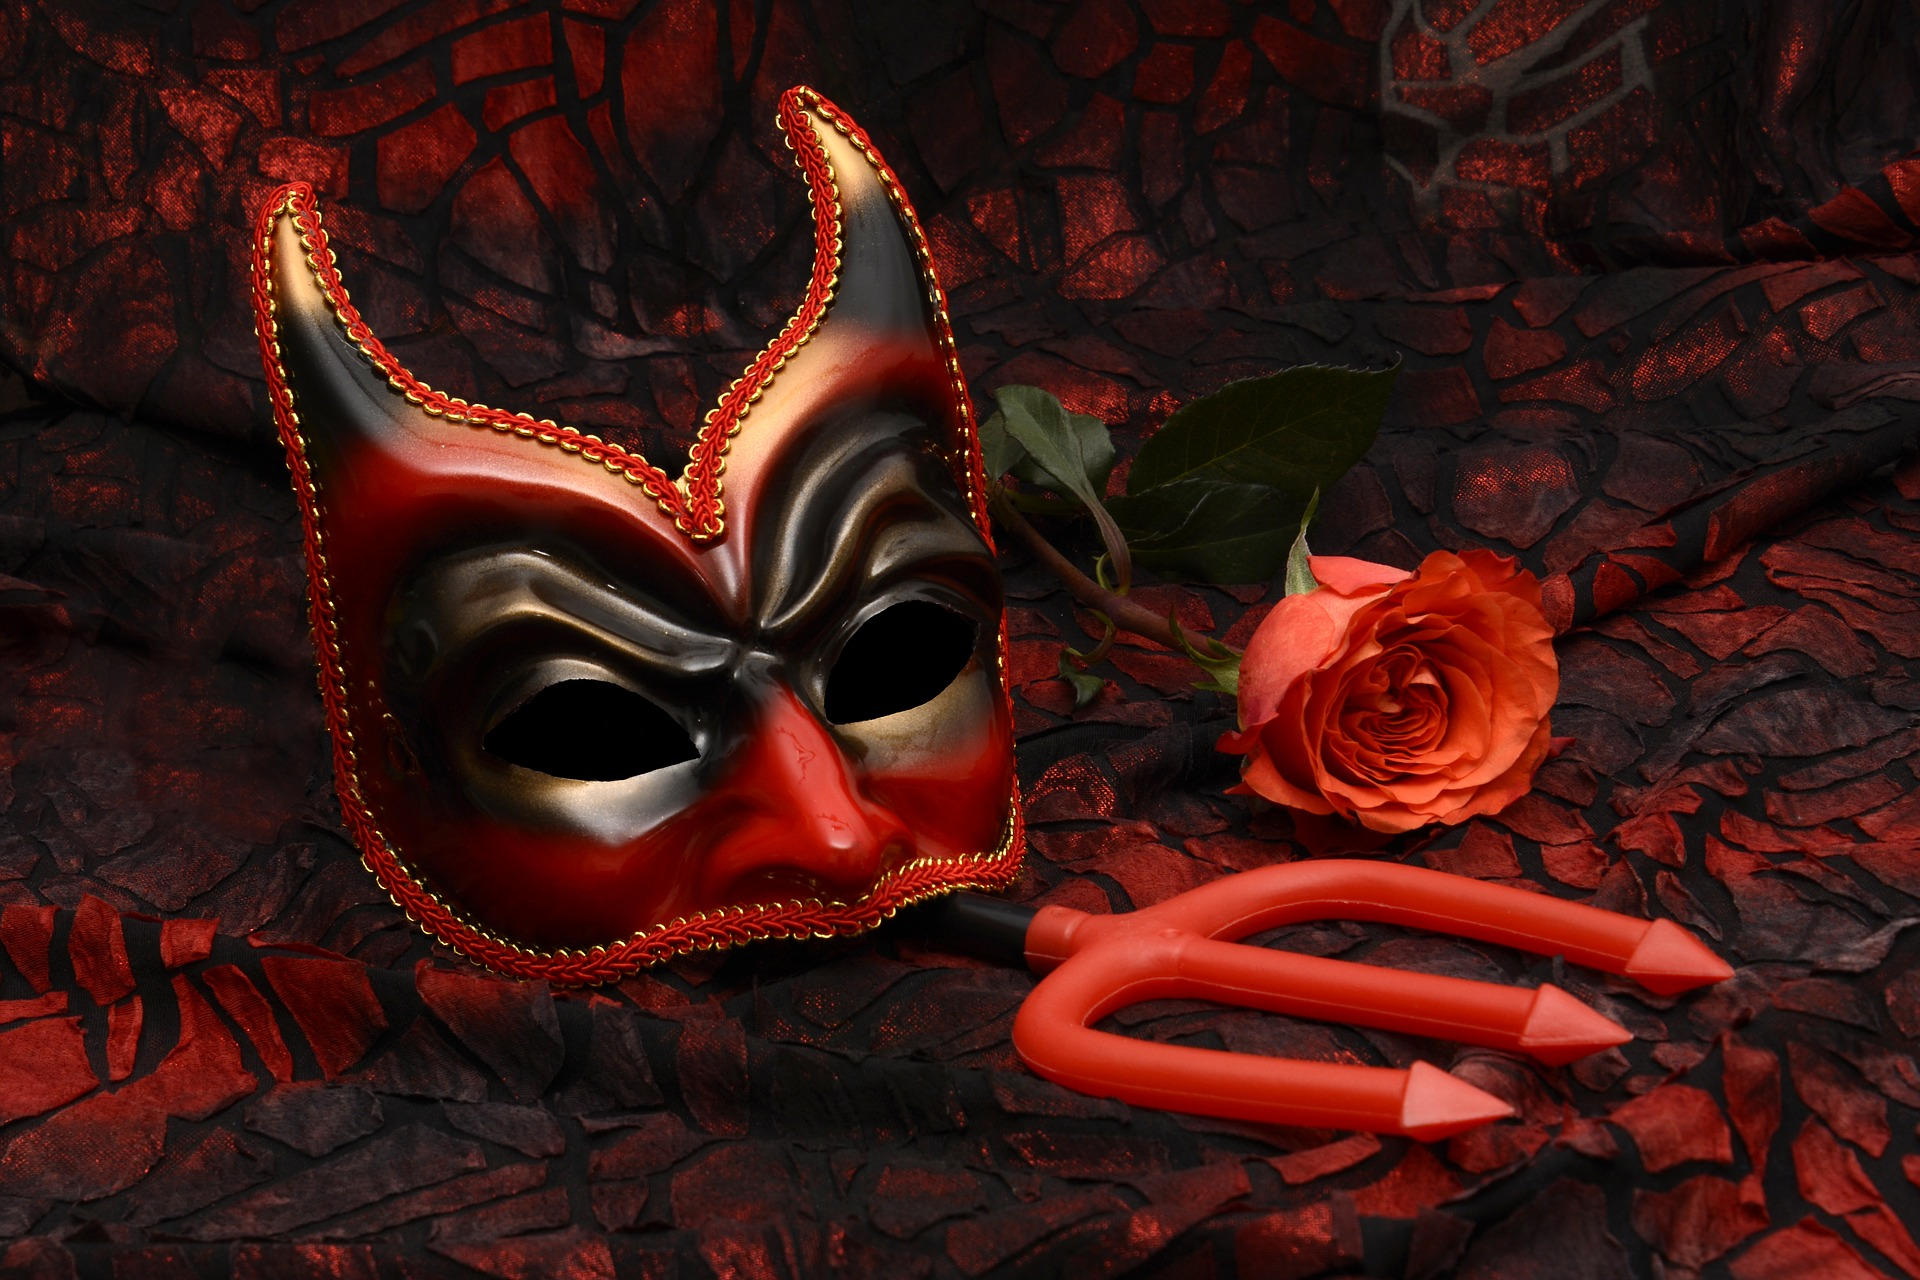 Demon mask, trident and red rose